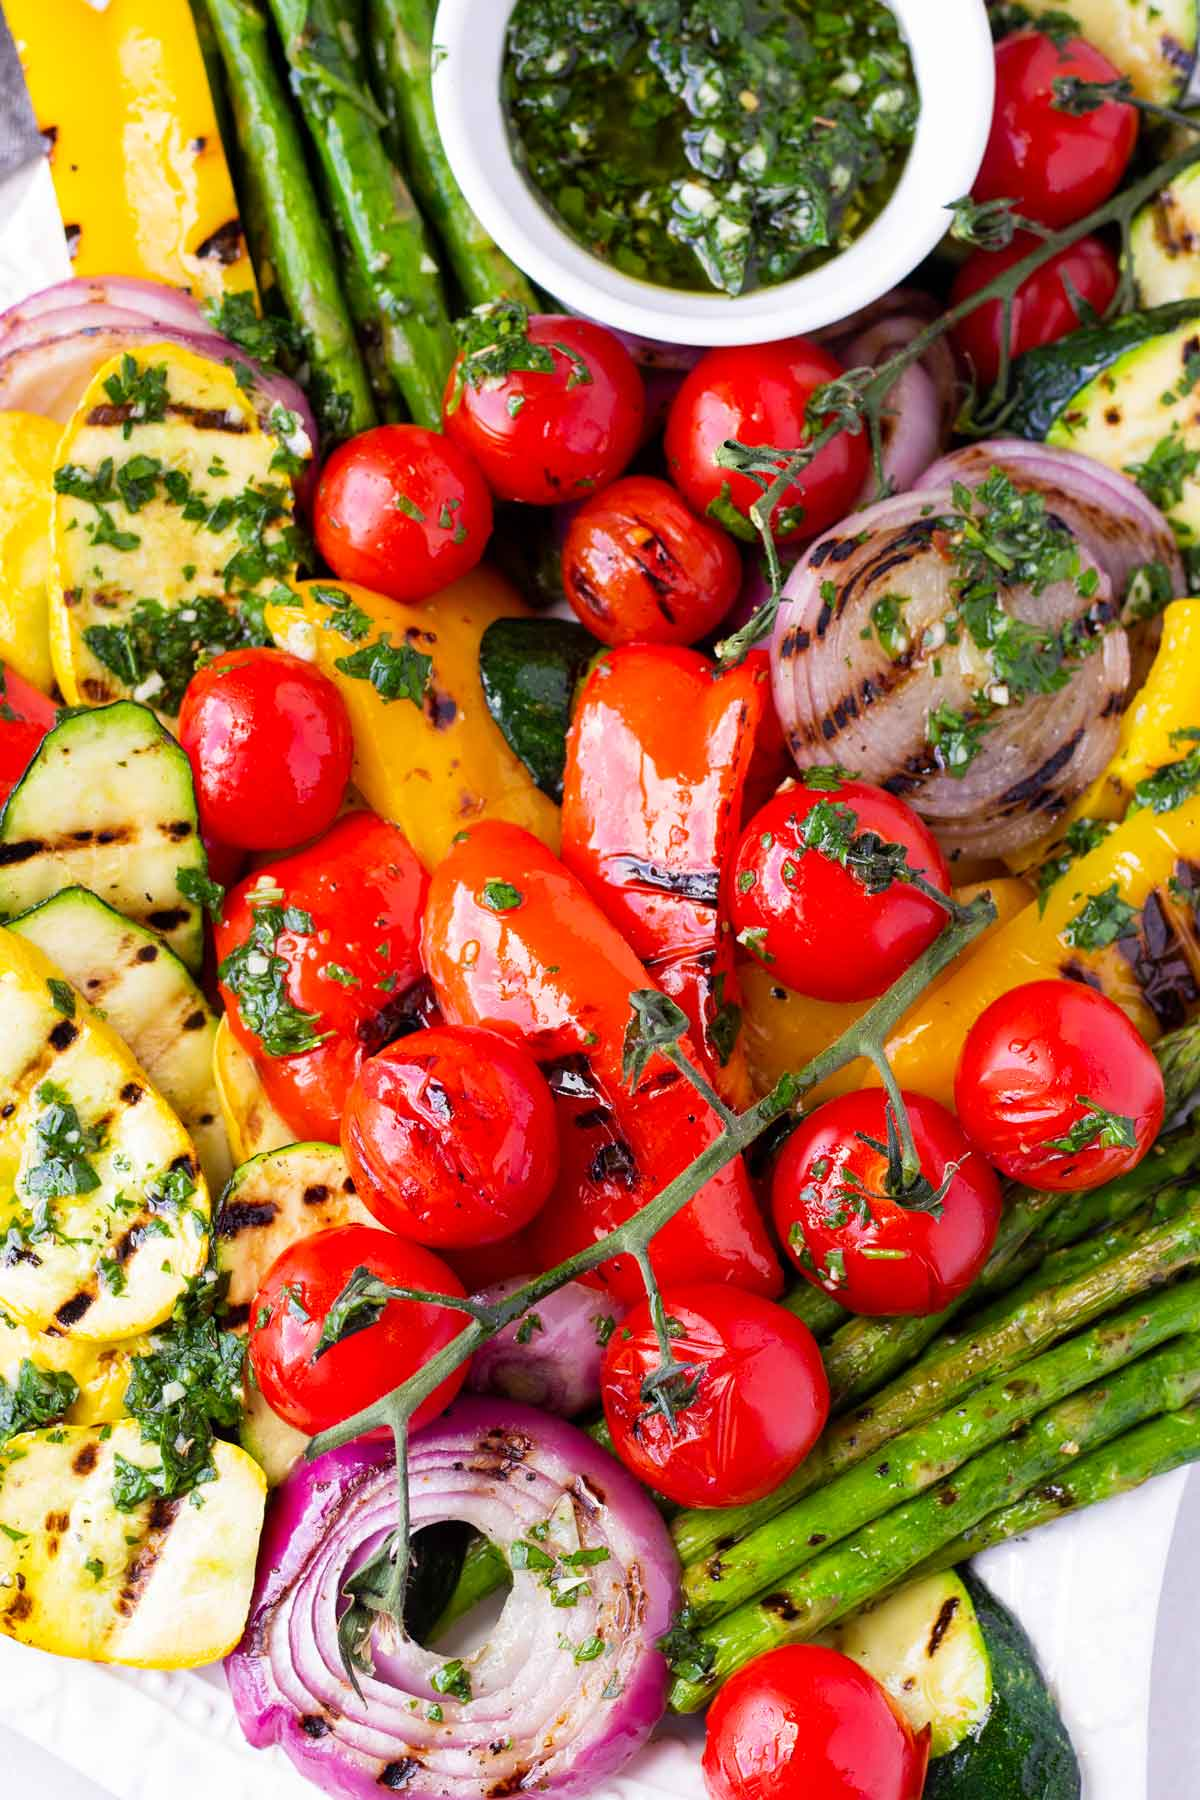 grilled tomatoes on the vine, asparagus, red onions, and zucchini with herb sauce